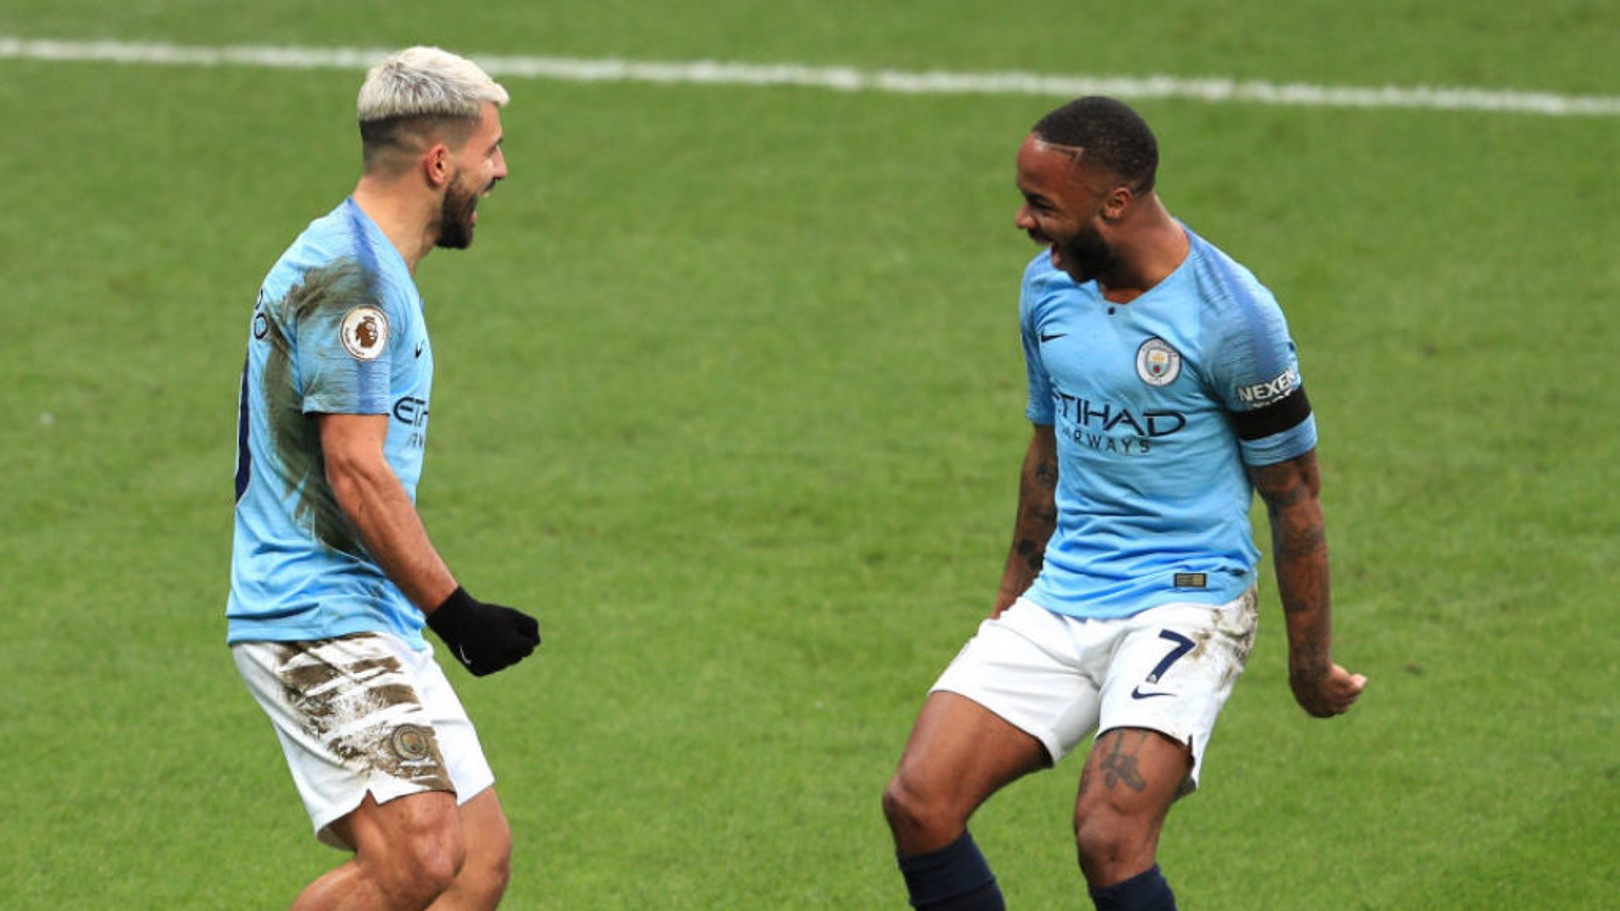 GOAL GLUT: Aguero and Sterling celebrate